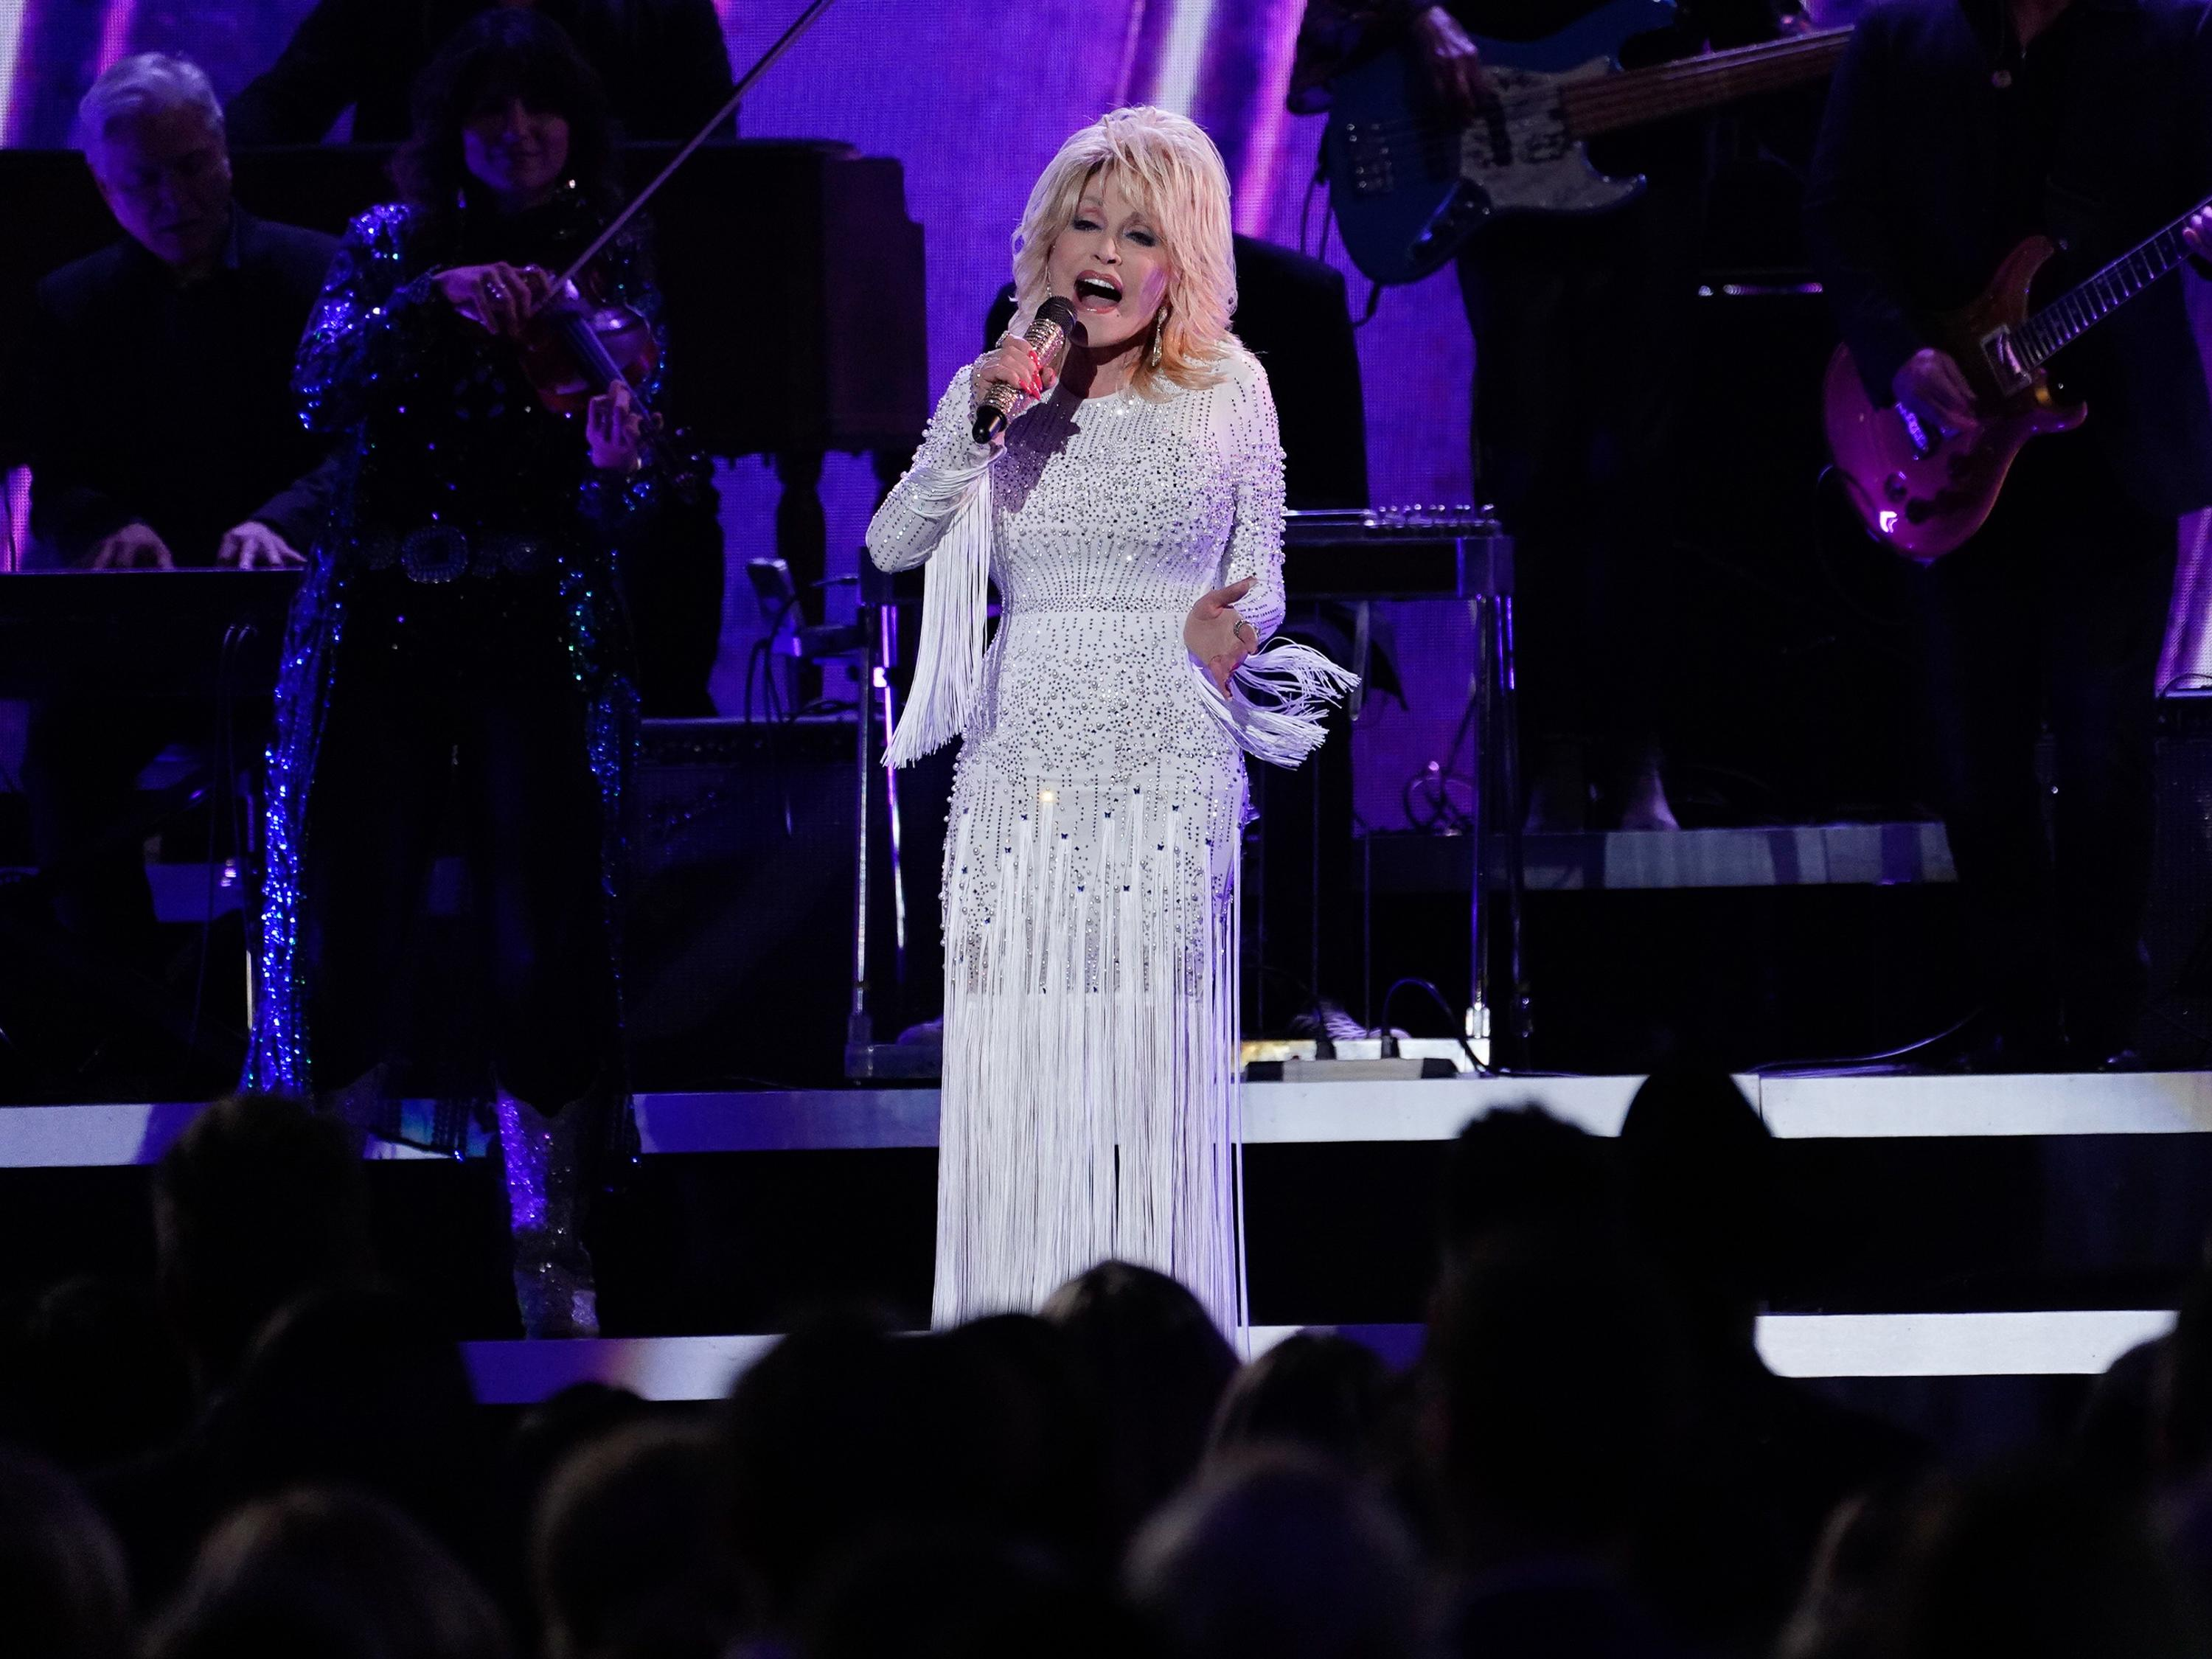 dolly parton challenge - photo #46